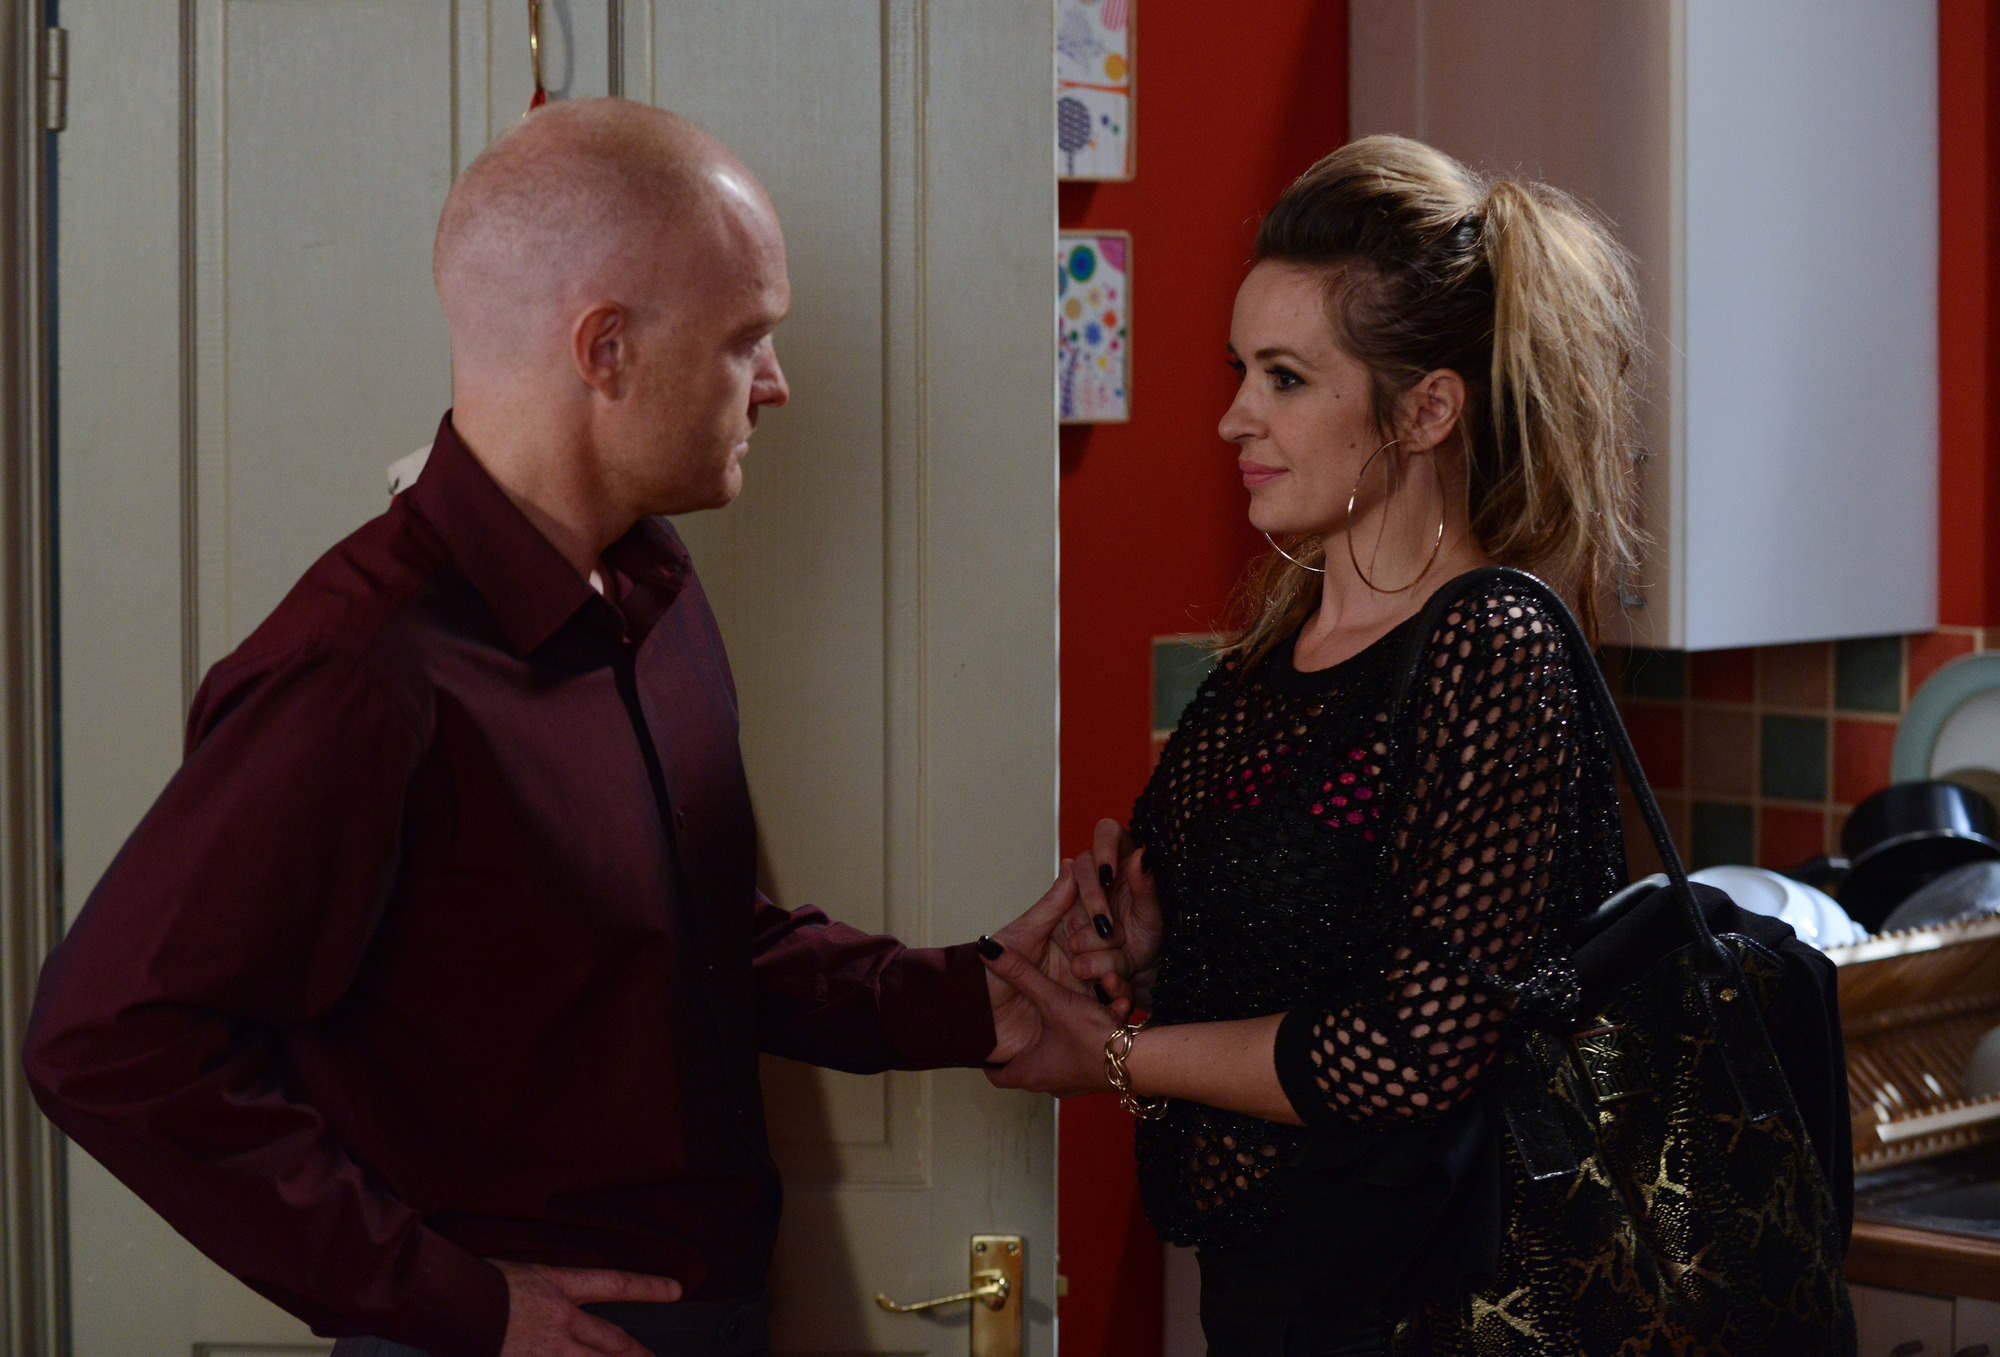 Programme Name: EastEnders - TX: 09/08/2013 - Episode: n/a (No. 4689) - Embargoed for publication until: 30/07/2013 - Picture Shows: Lauren brings Kirsty over to see Max. She arrives with her suitcase and it's clear that she wants them to give things